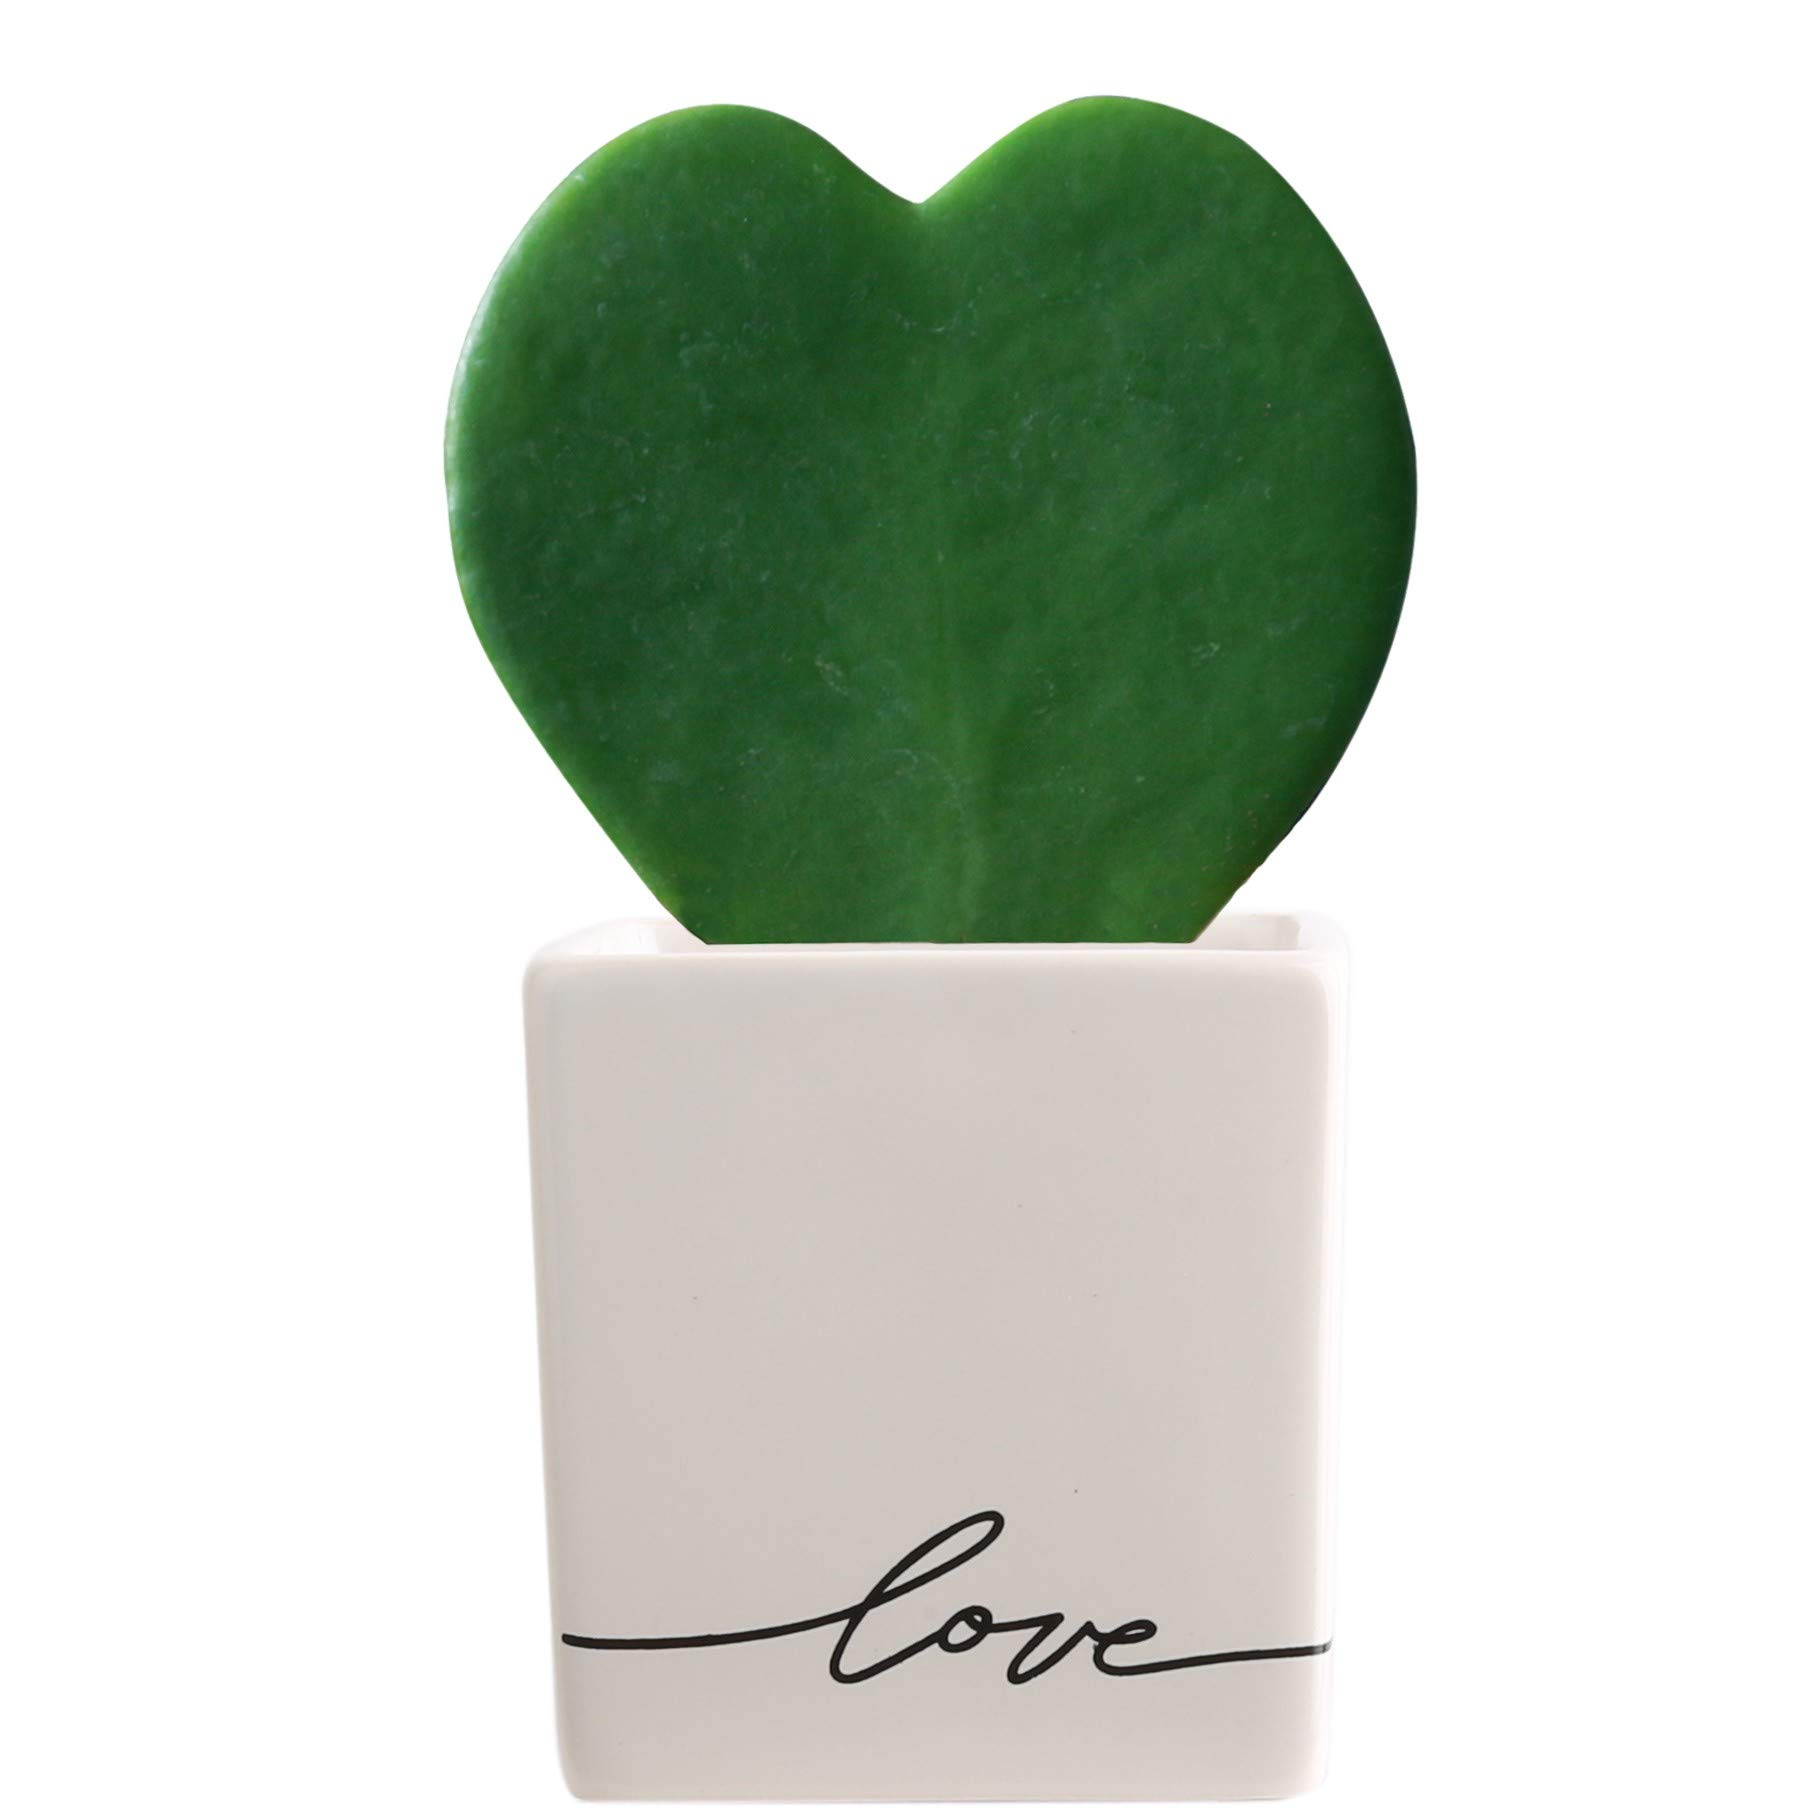 Costa Farms Live Hoya Heart, Succulent-Like Plant, Hoya Kerrii, in Love Balloon White Ceramic